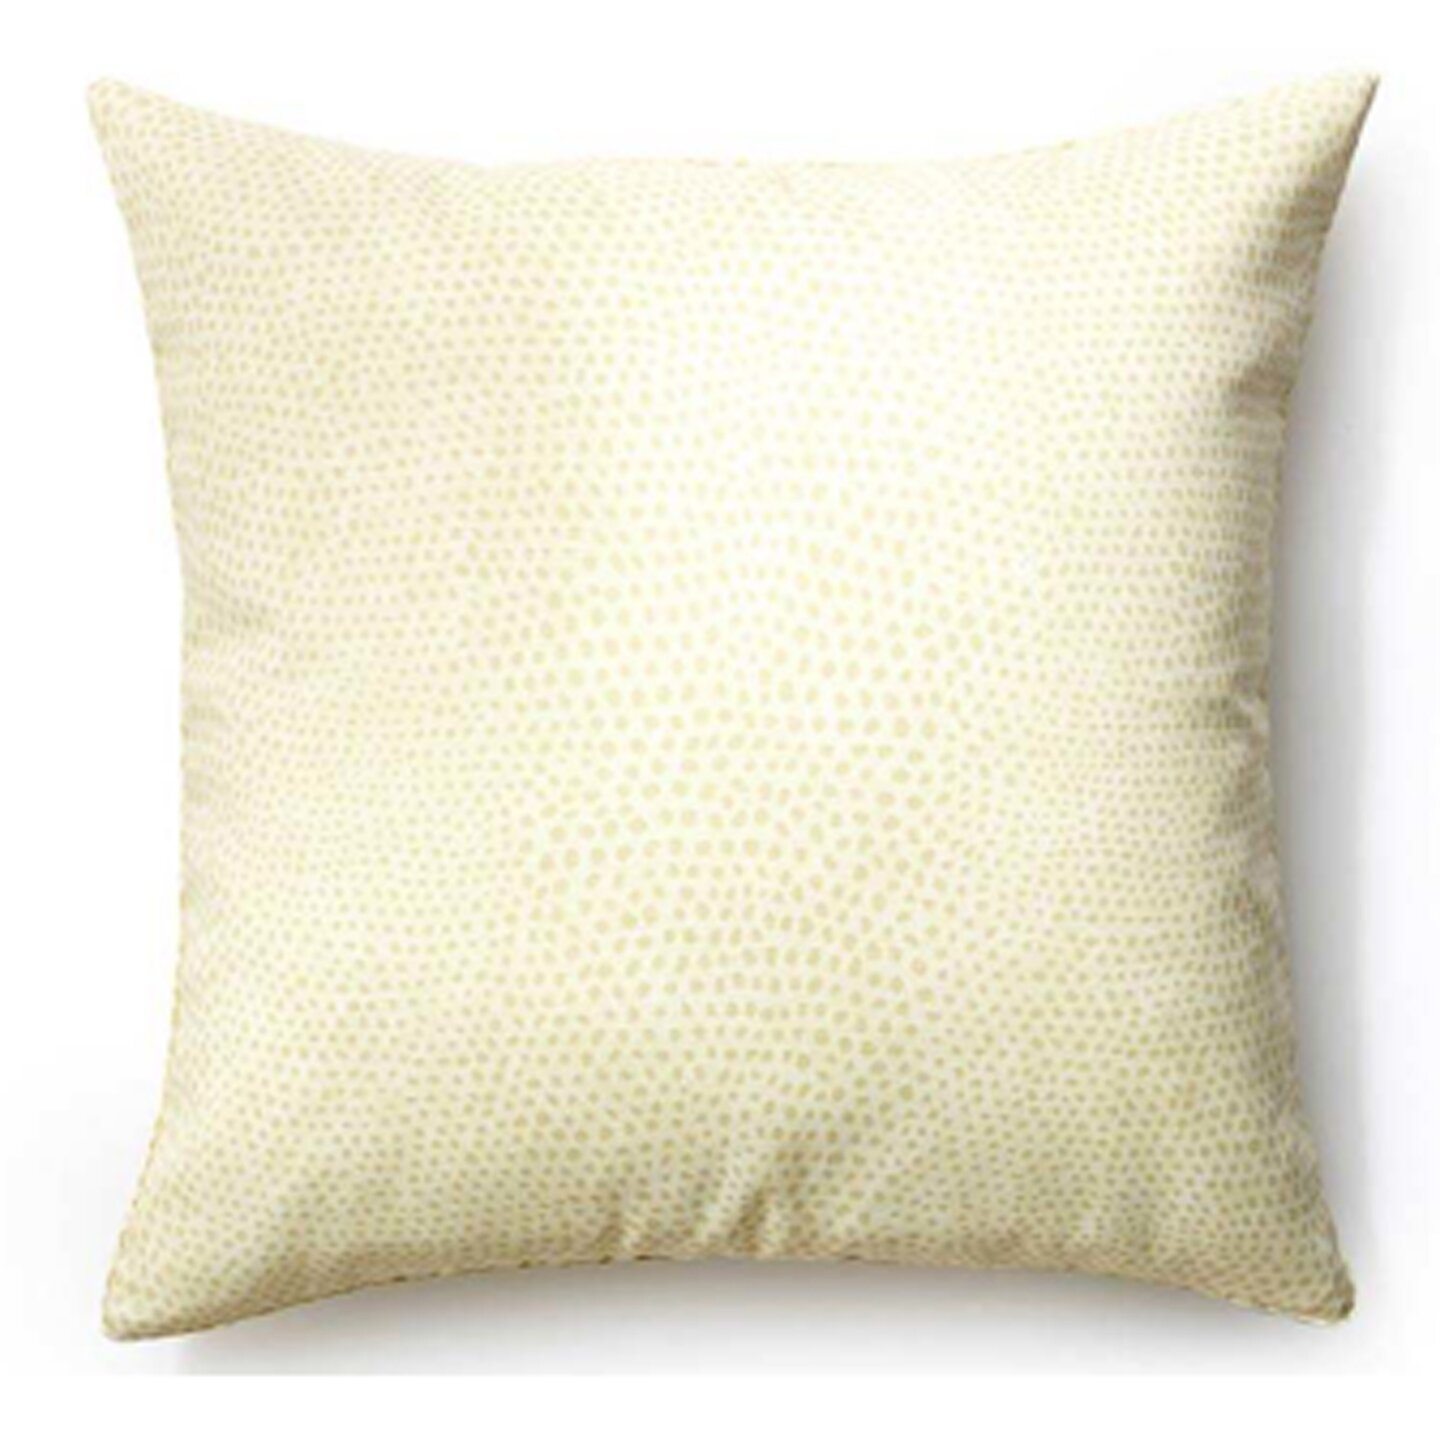 Jiti Decorative Pillows : Jiti Cheetah Indoor/Outdoor Throw Pillow & Reviews Wayfair